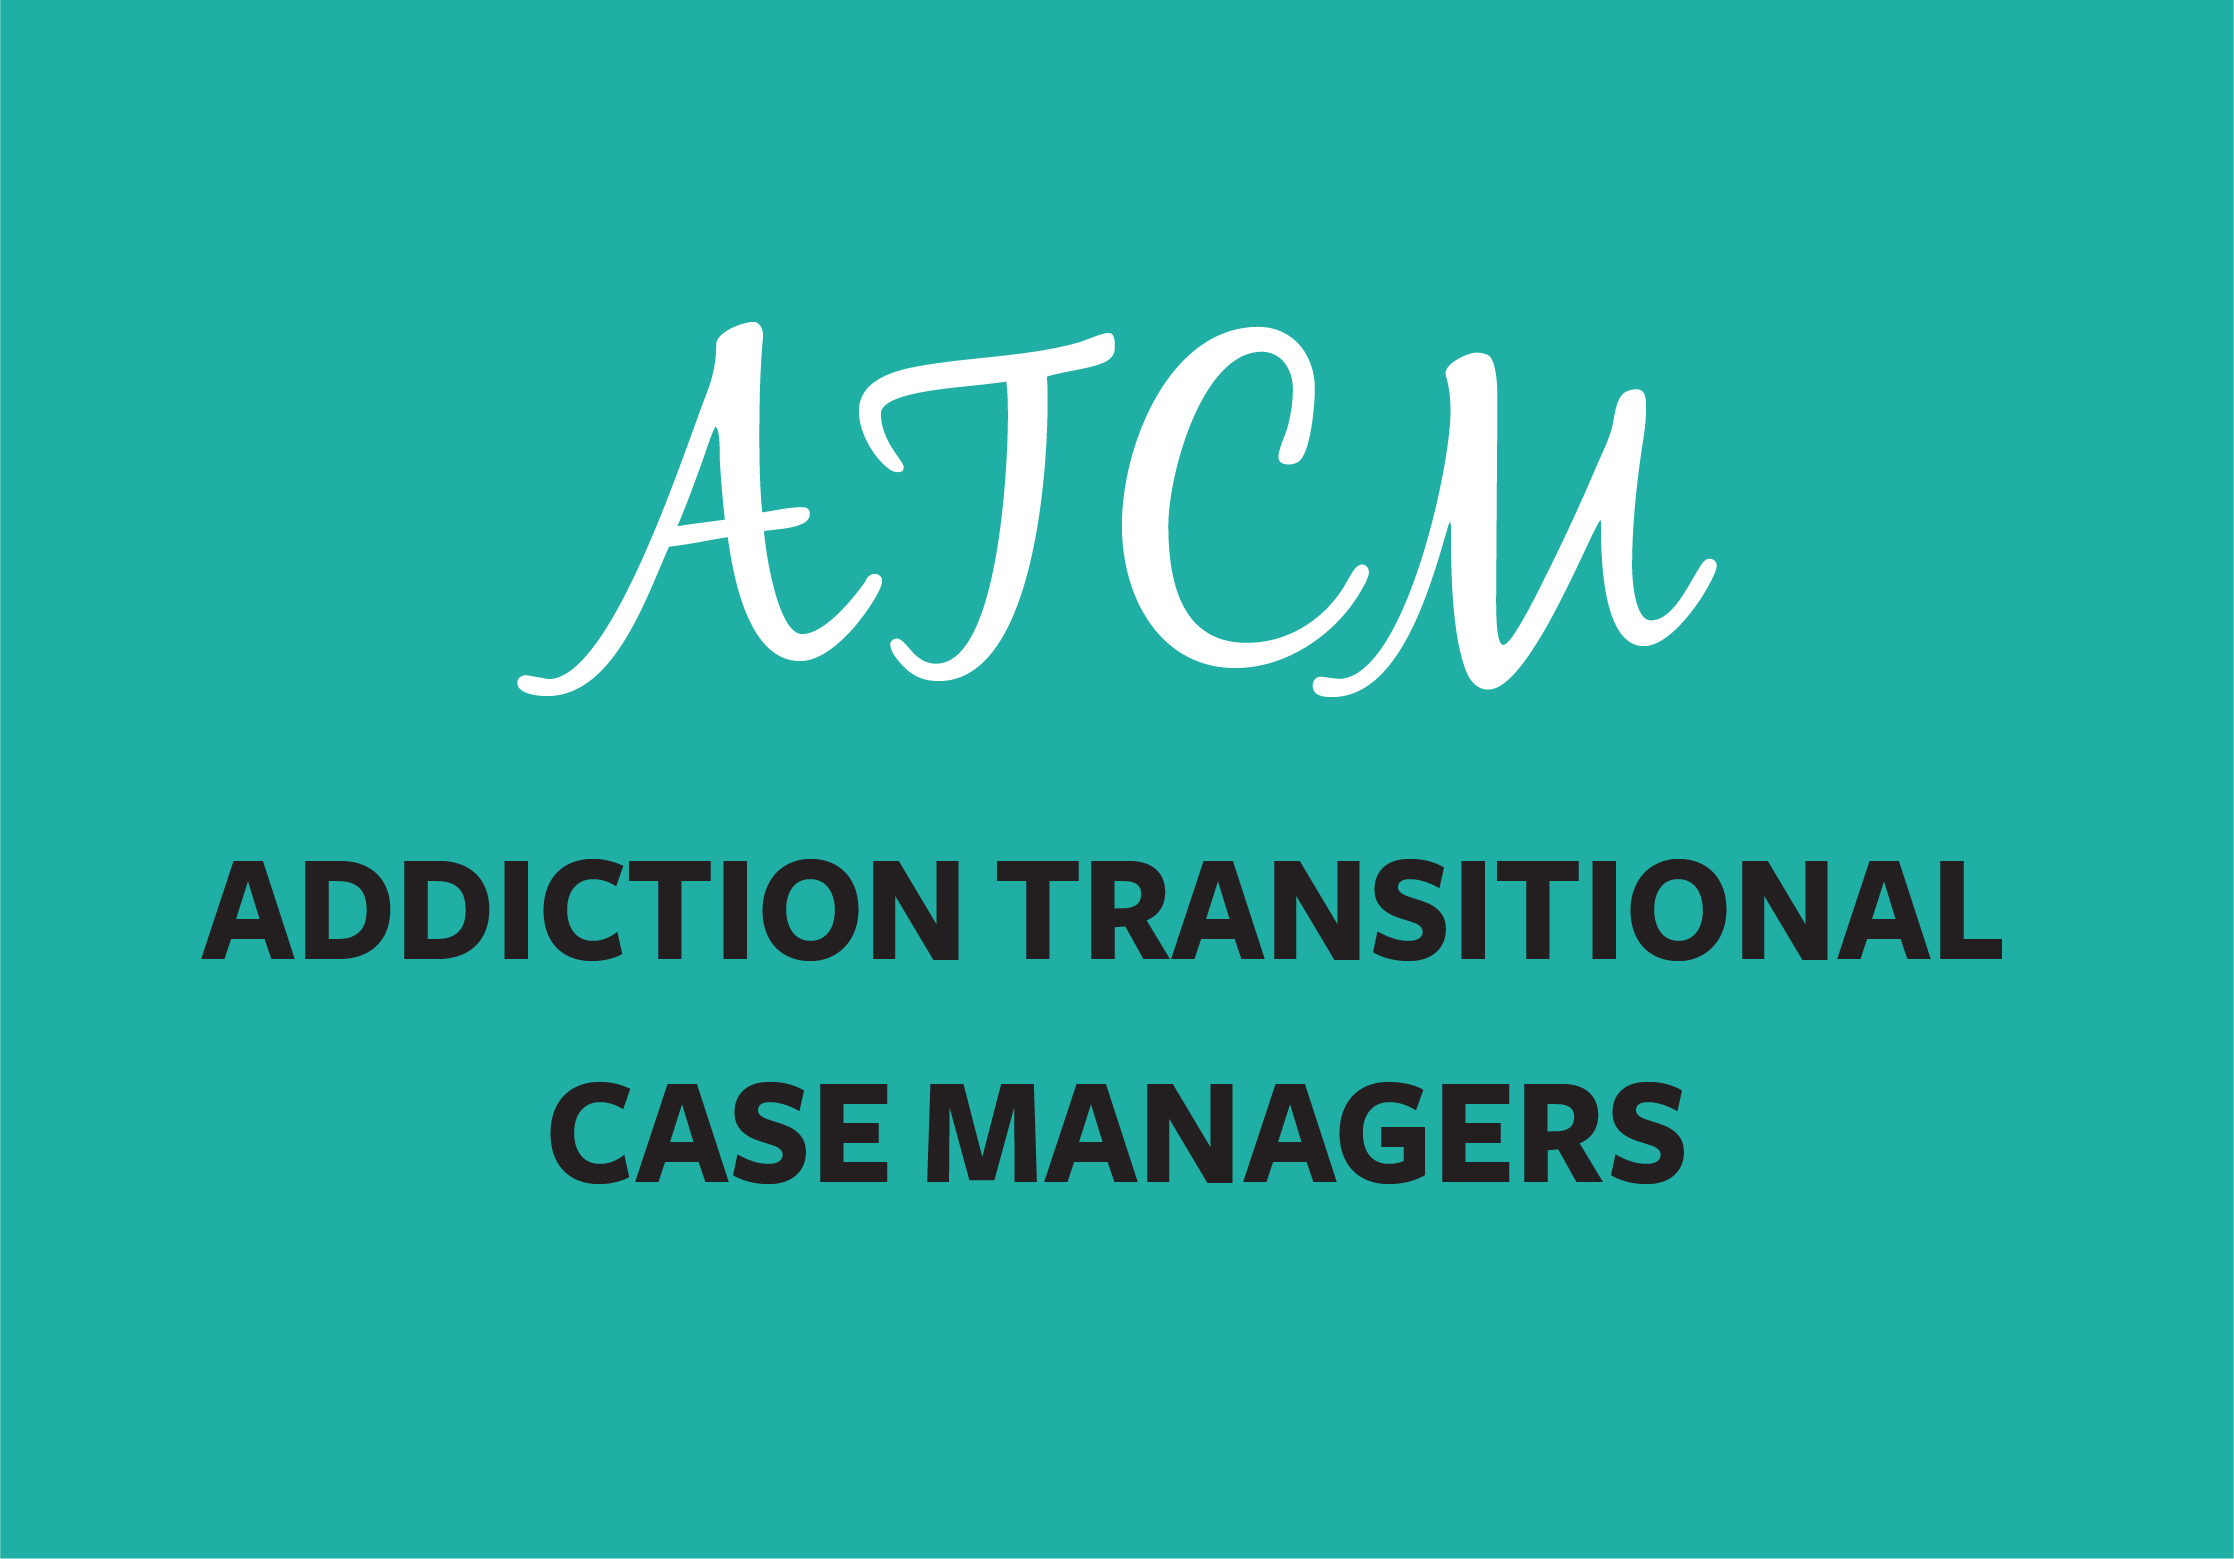 Link to Addiction Transitional Case Managers page